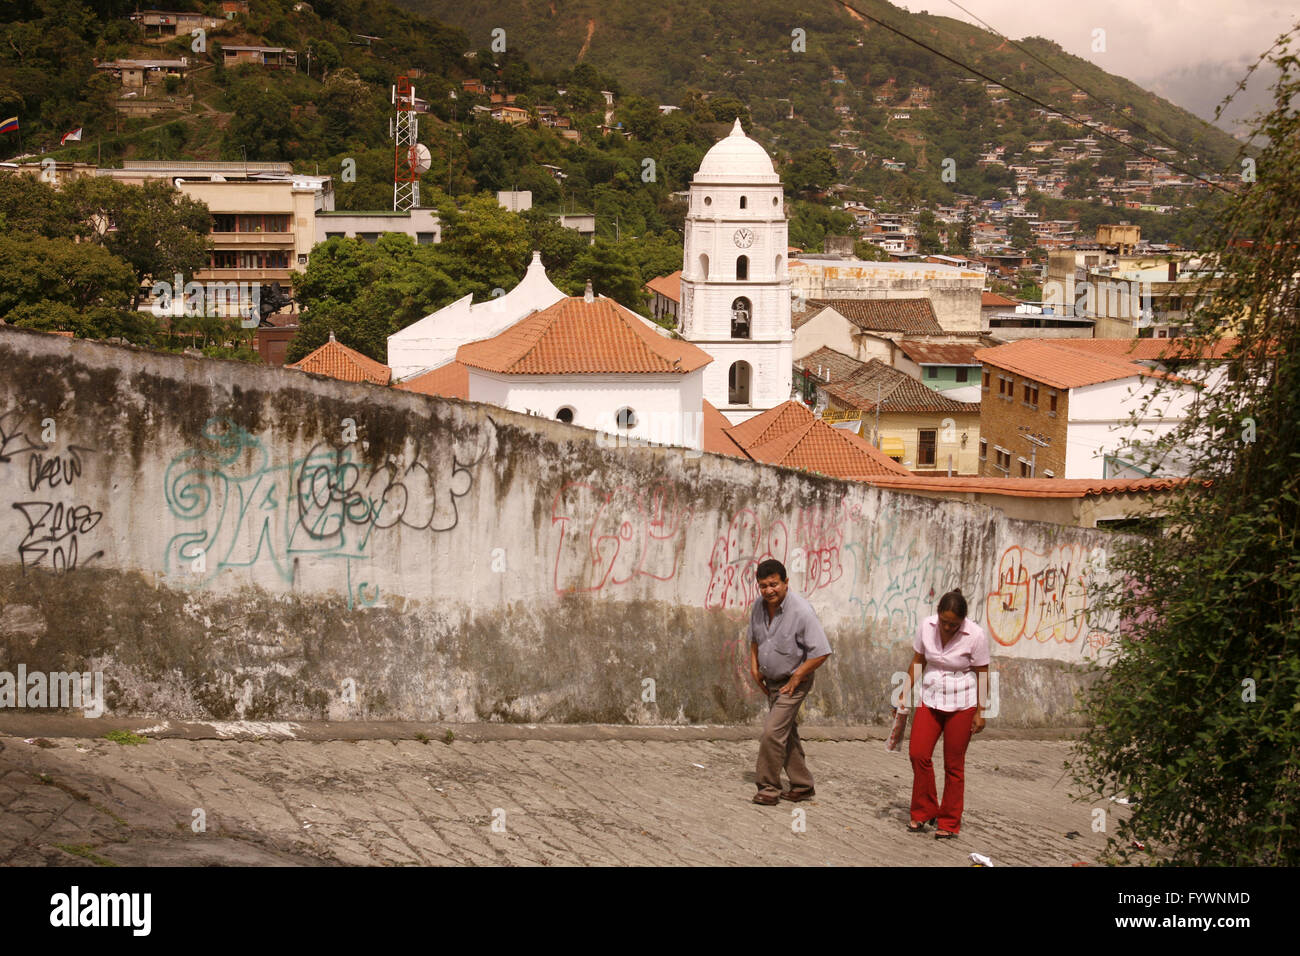 SOUTH AMERICA VENEZUELA TRUJILLO TOWN - Stock Image